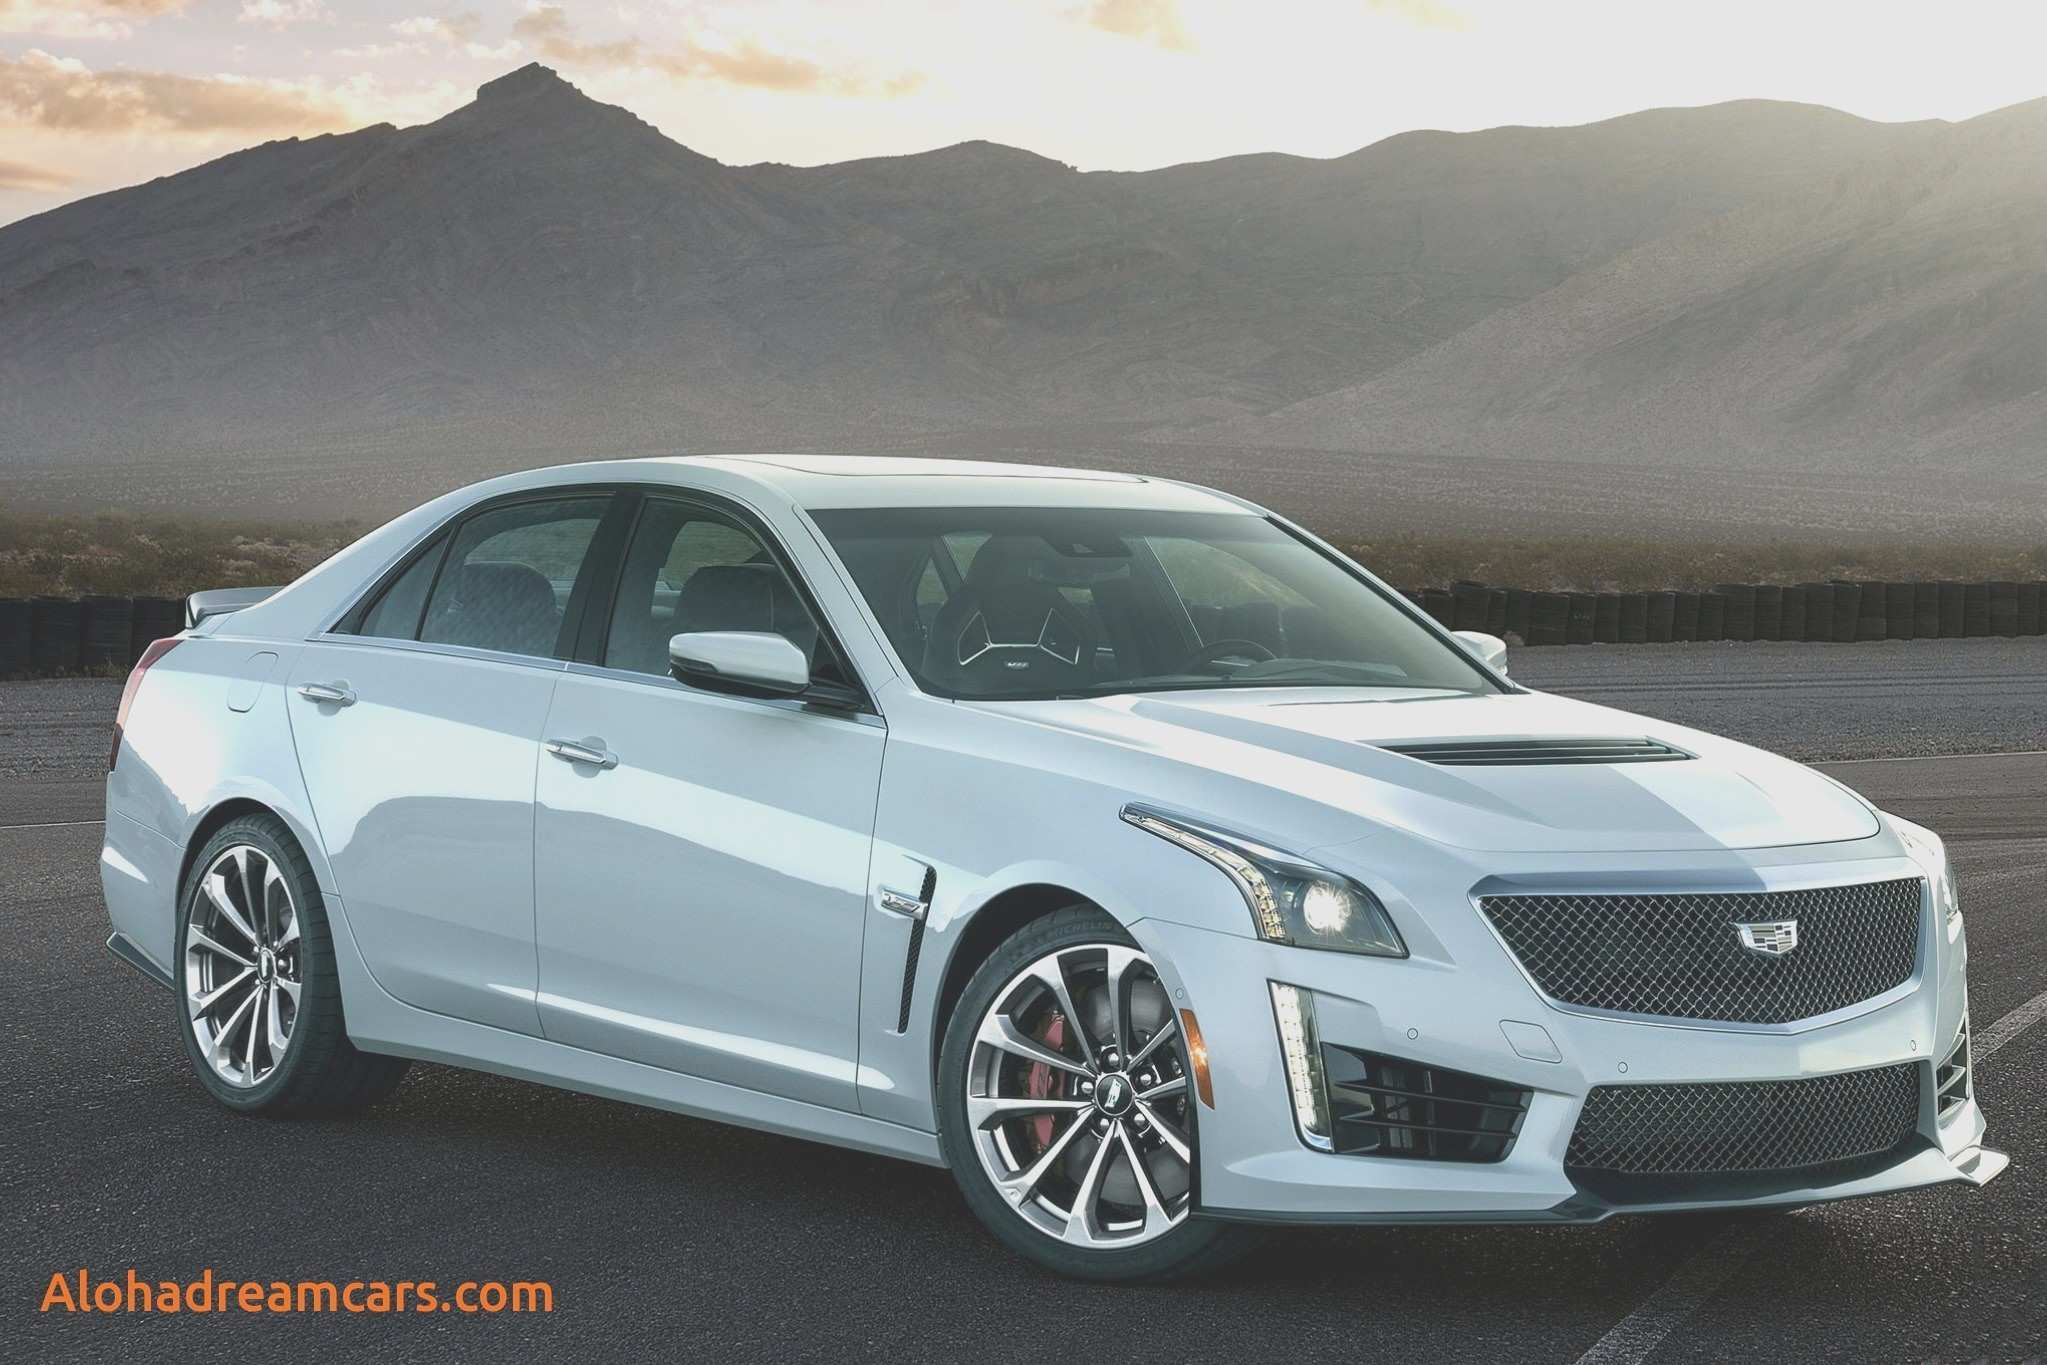 79 All New 2020 Cadillac ATS V Coupe Release Date And Concept